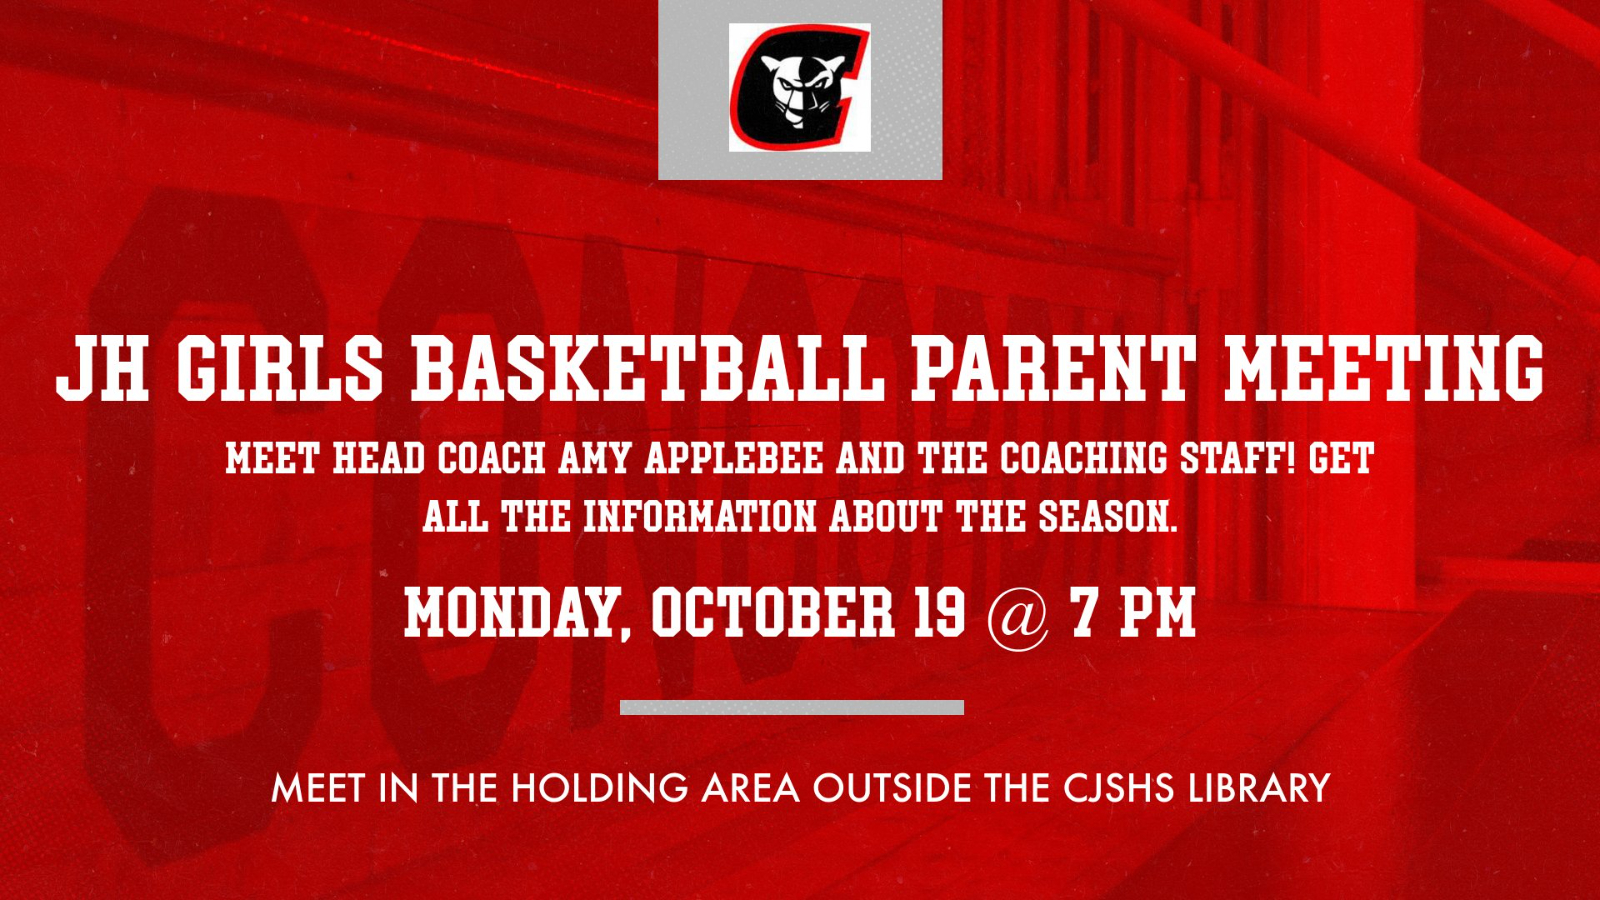 JH Girls Basketball to hold parent meeting October 19